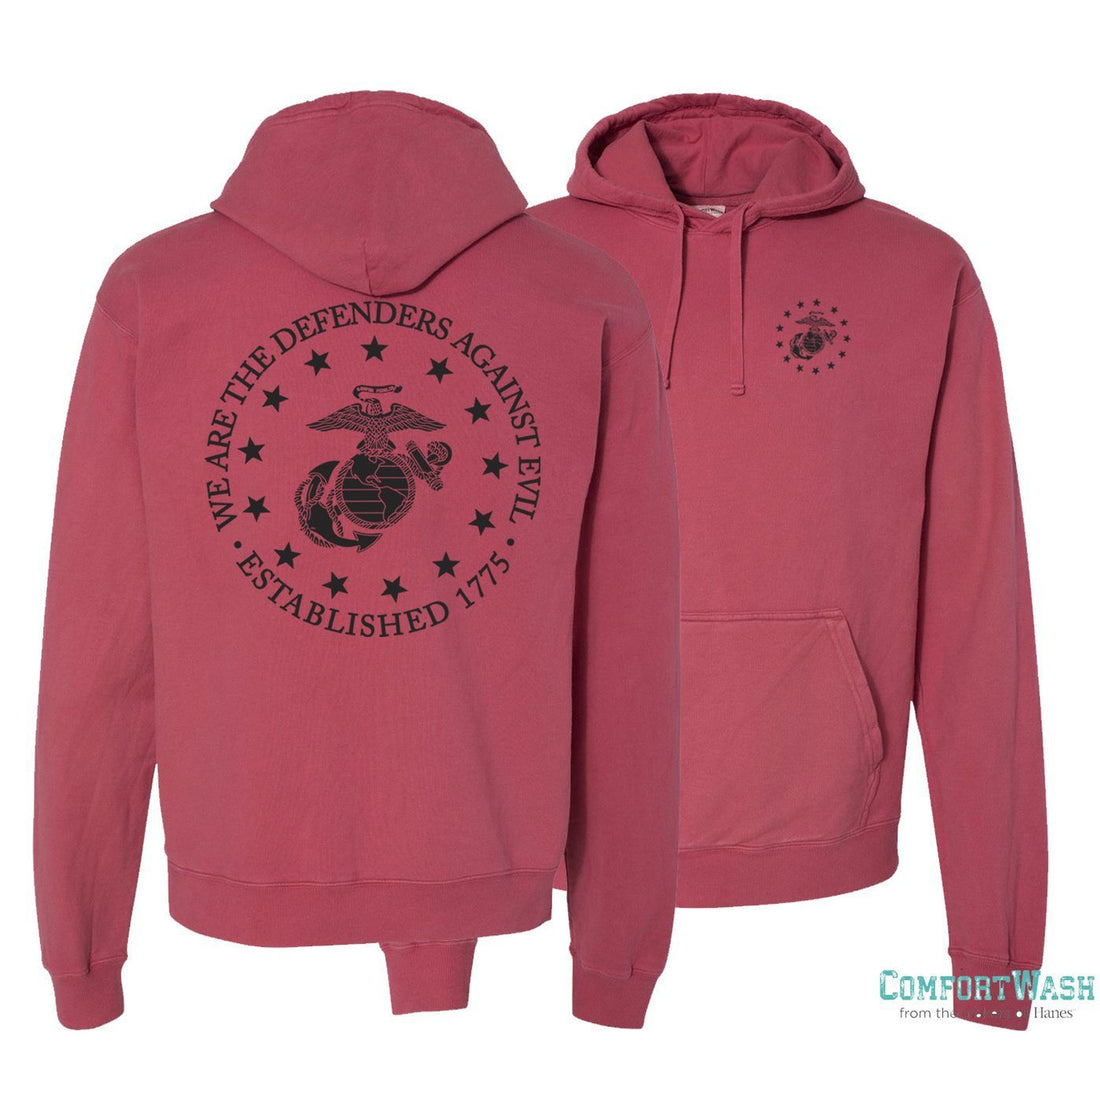 USMC sweatshirt with EGA seal surrounded by stars on the front and back - Marine Corps Direct